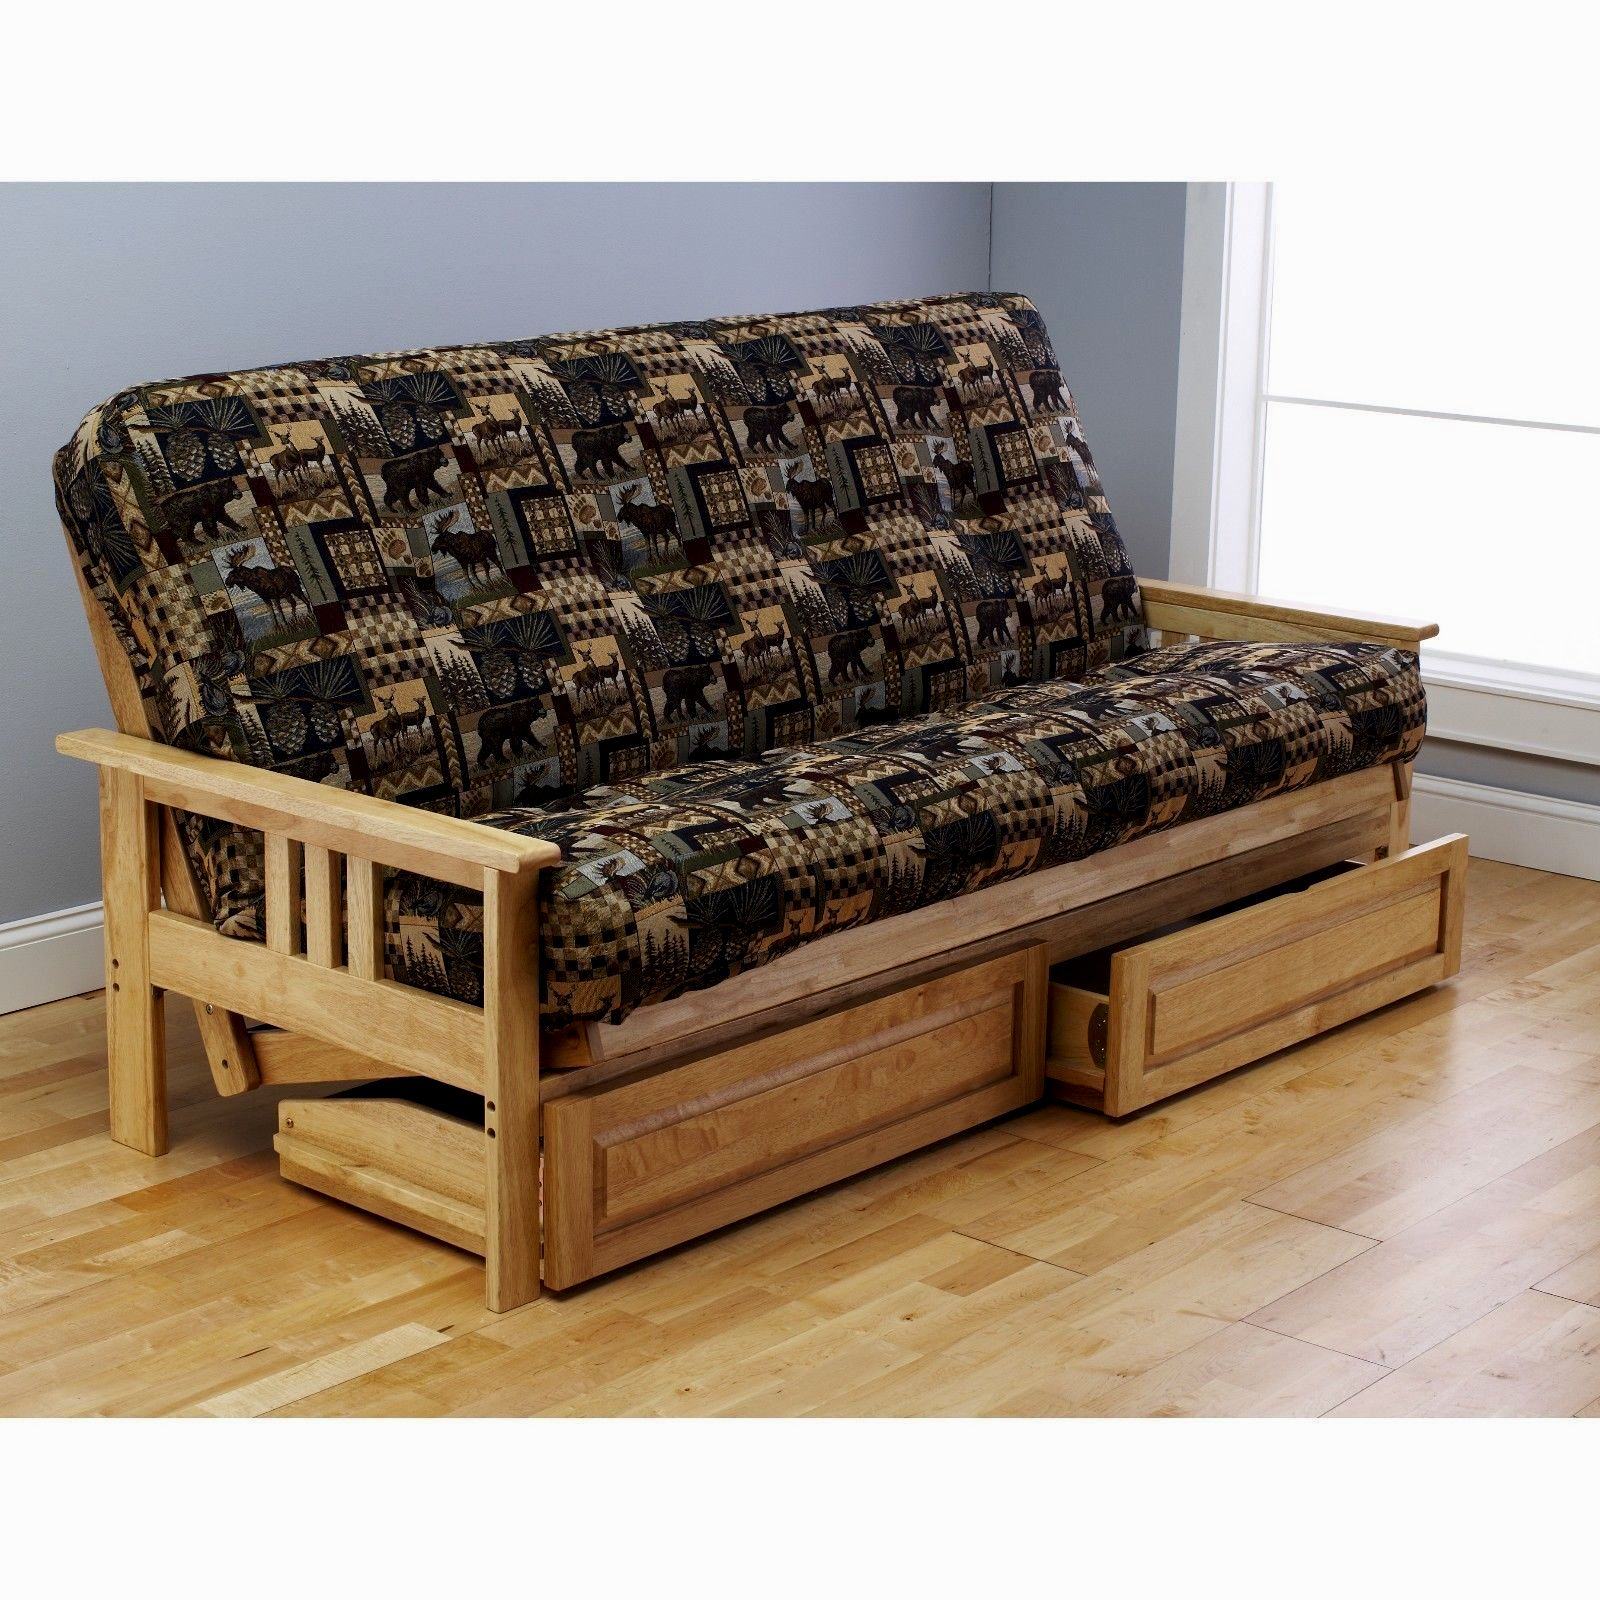 fantastic small sofa beds concept-Beautiful Small sofa Beds Gallery